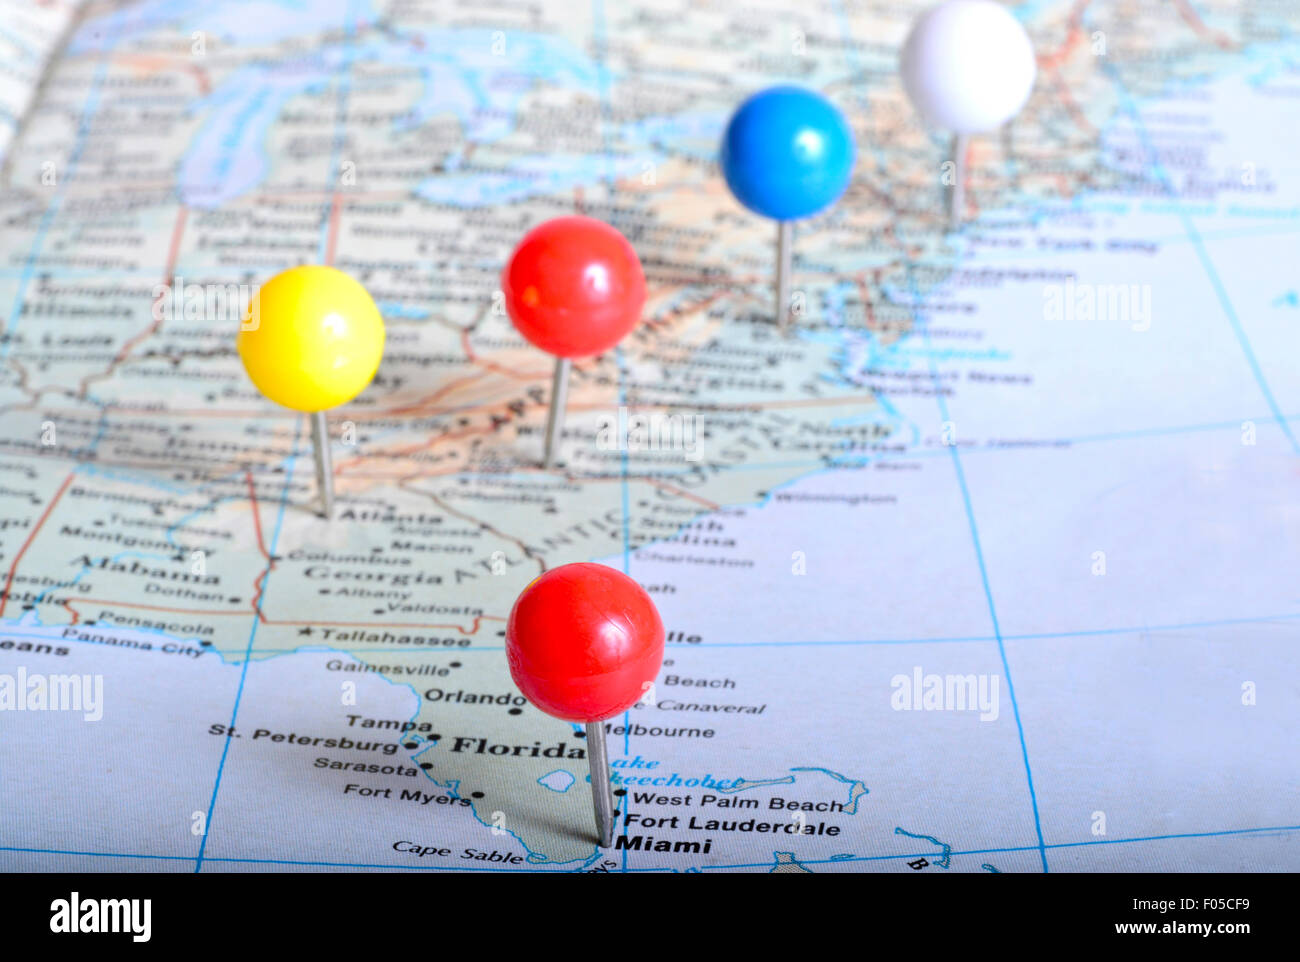 South Eastern United States Map Stock Photos & South Eastern ...